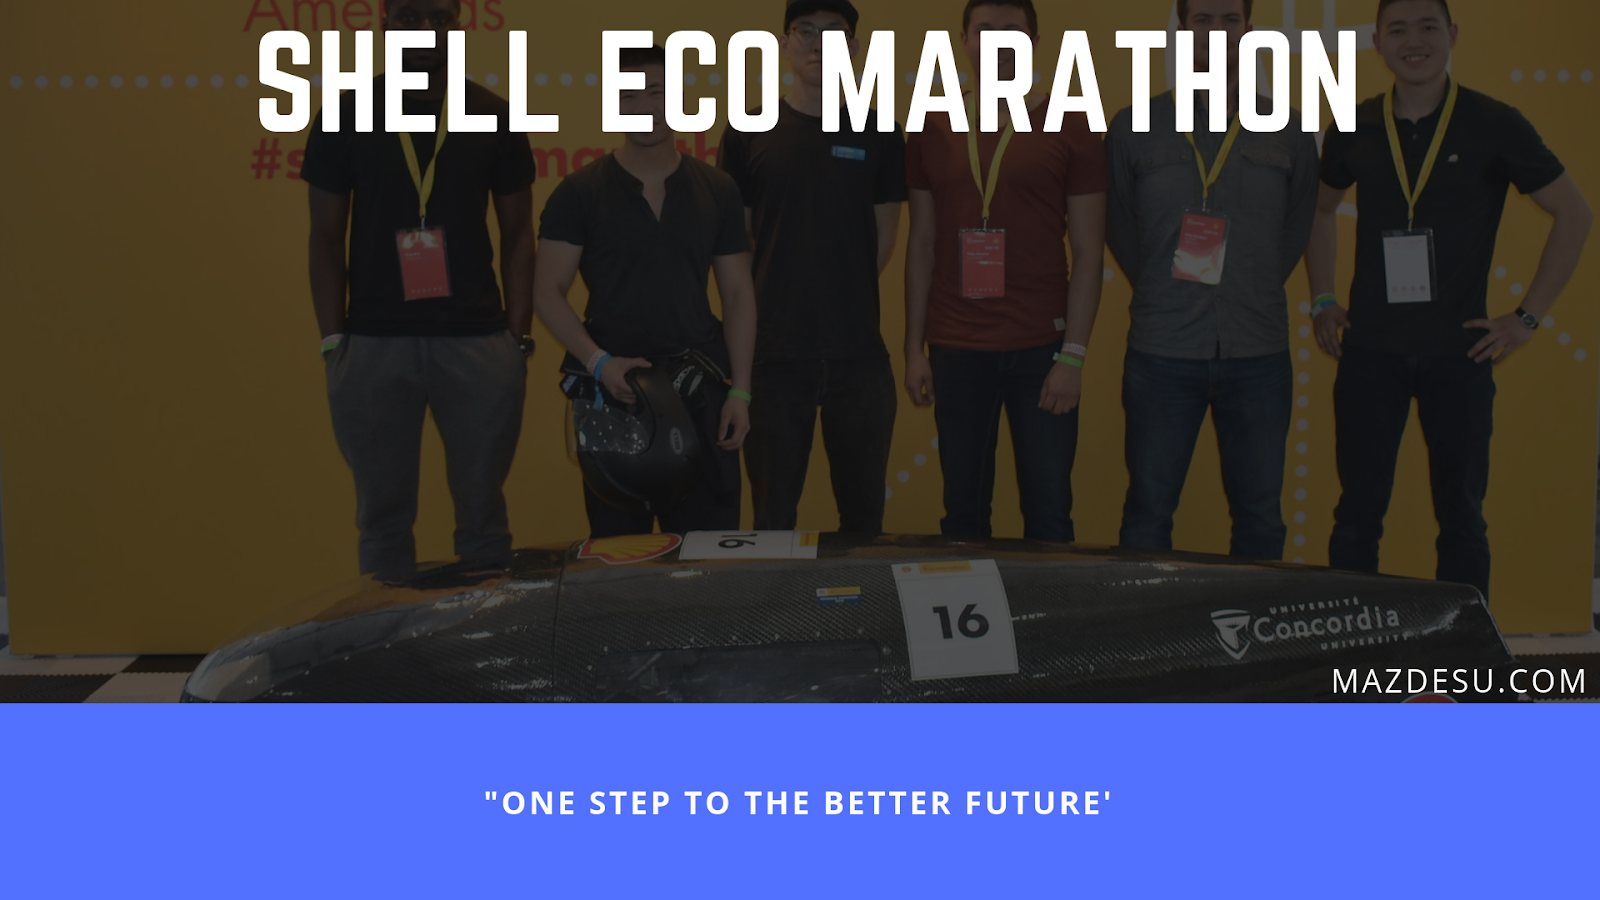 Shell Eco-Marathon: One Step to the Better Future